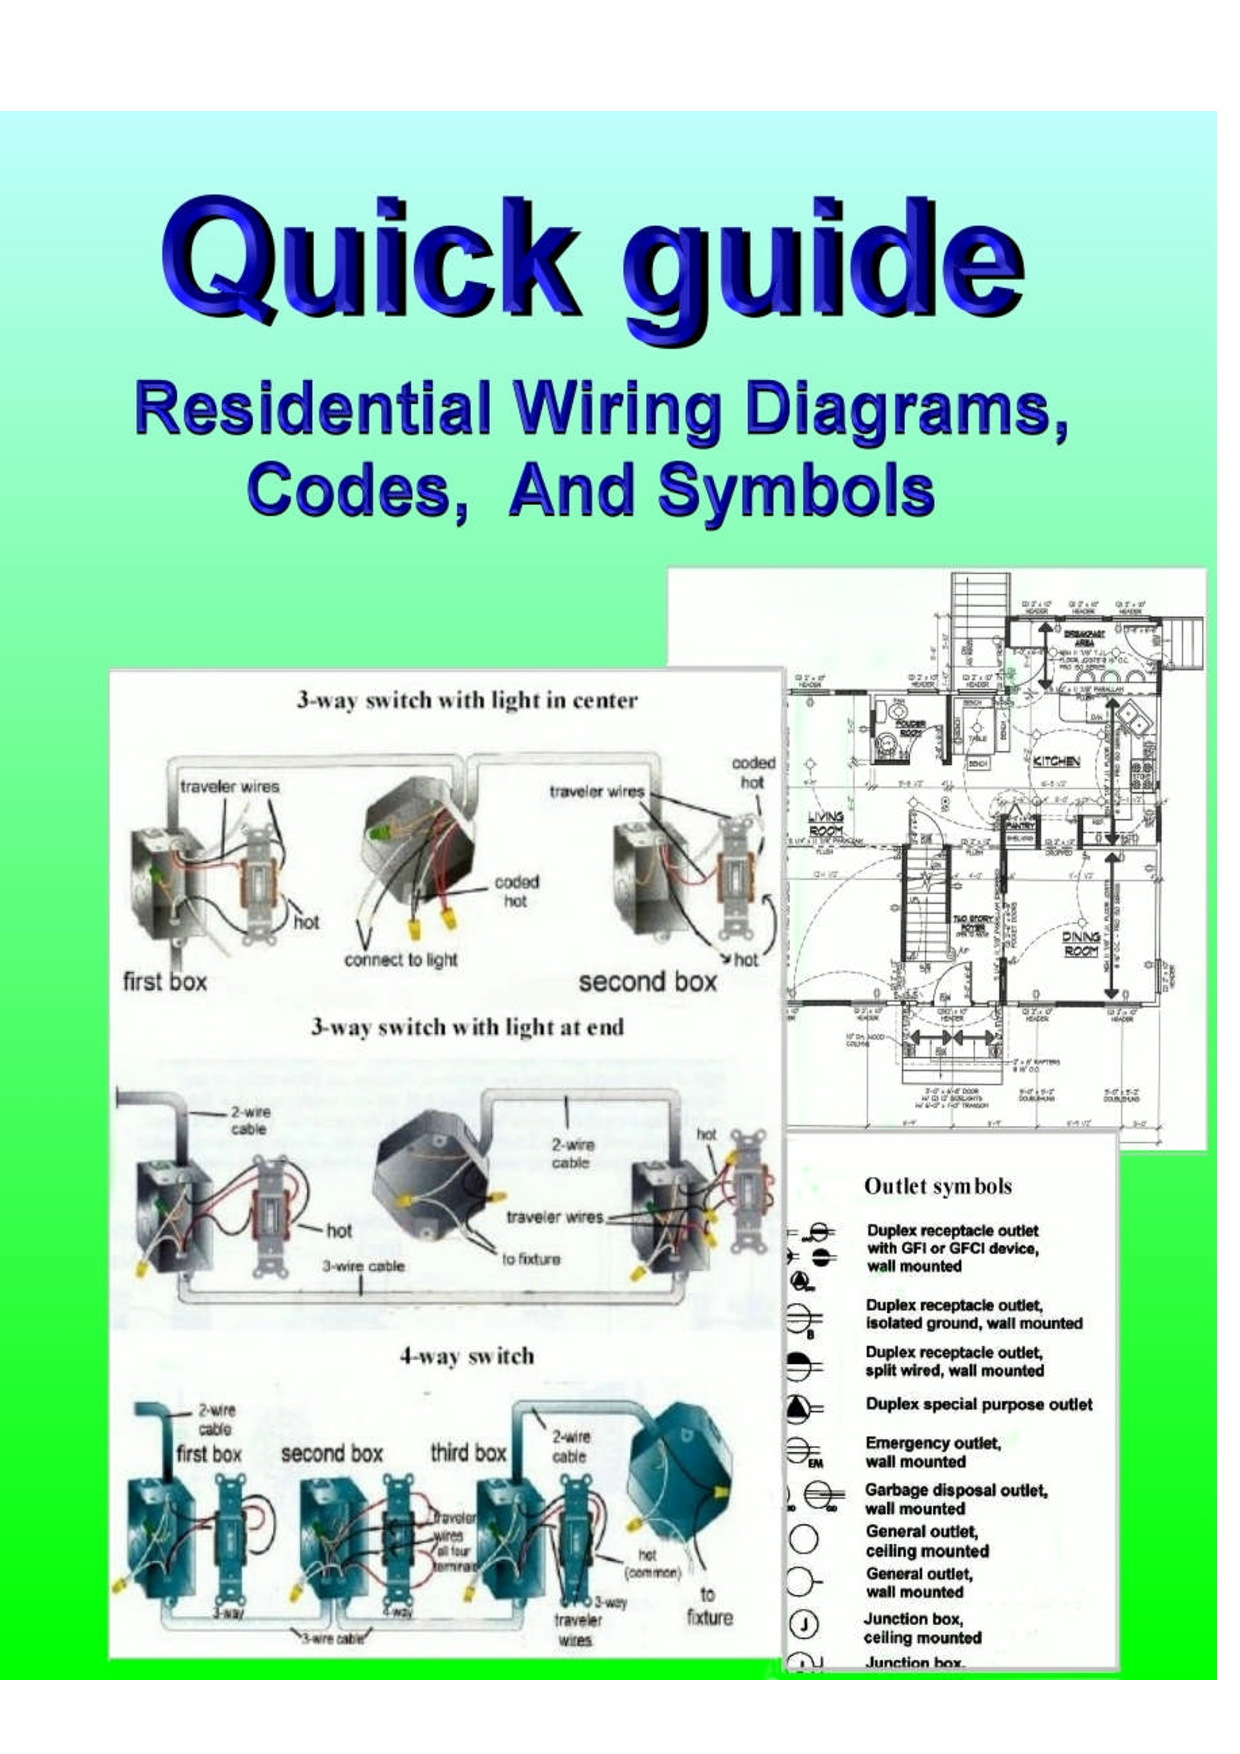 Home electrical wiring diagramspdf download legal documents 39 home electrical wiring diagramspdf download legal documents 39 pages with many diagrams and illustrations pooptronica